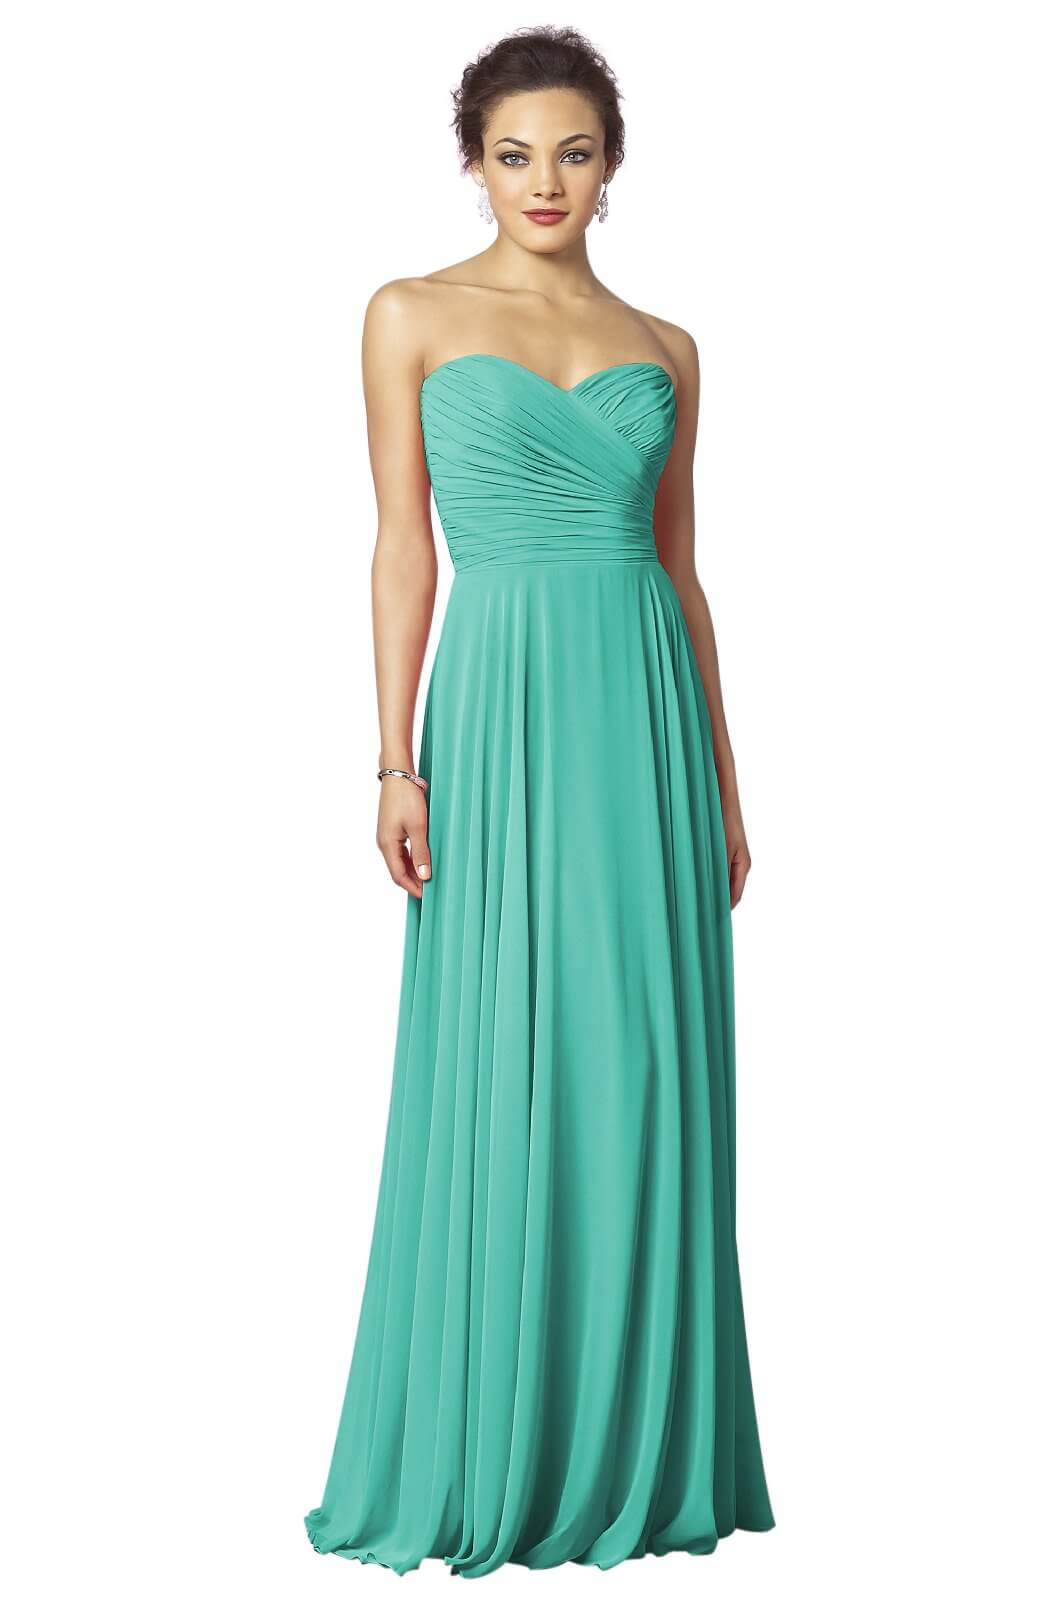 55c1eb88550d 33 Best Picks for Turquoise Bridesmaid Dresses - EverAfterGuide